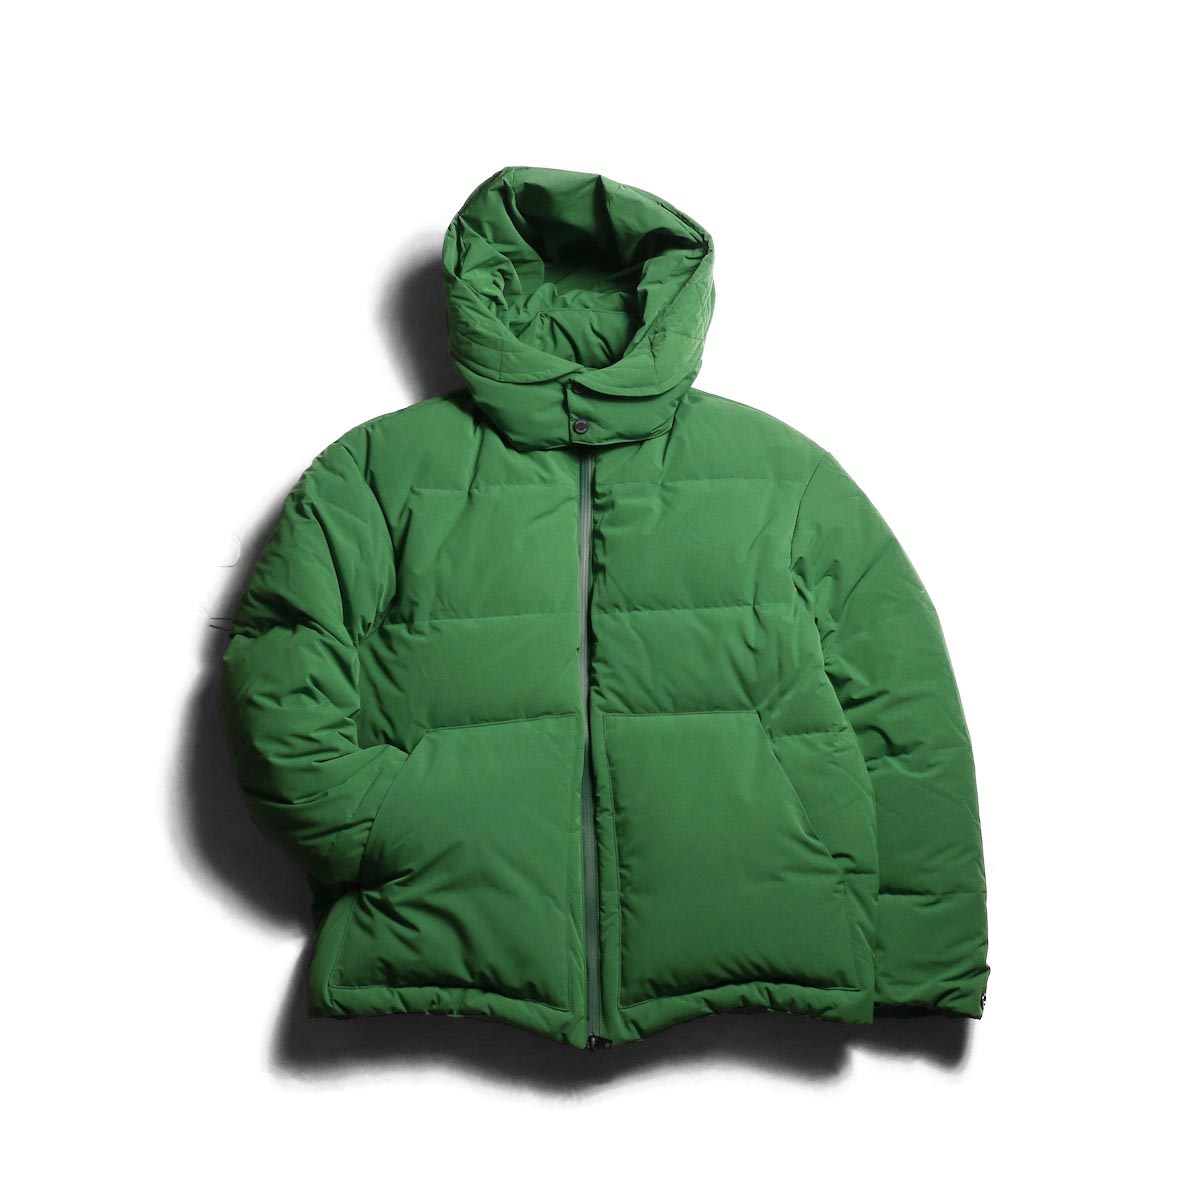 DESCENTE PAUSE / H.C.S DOWN JACKET (Green)